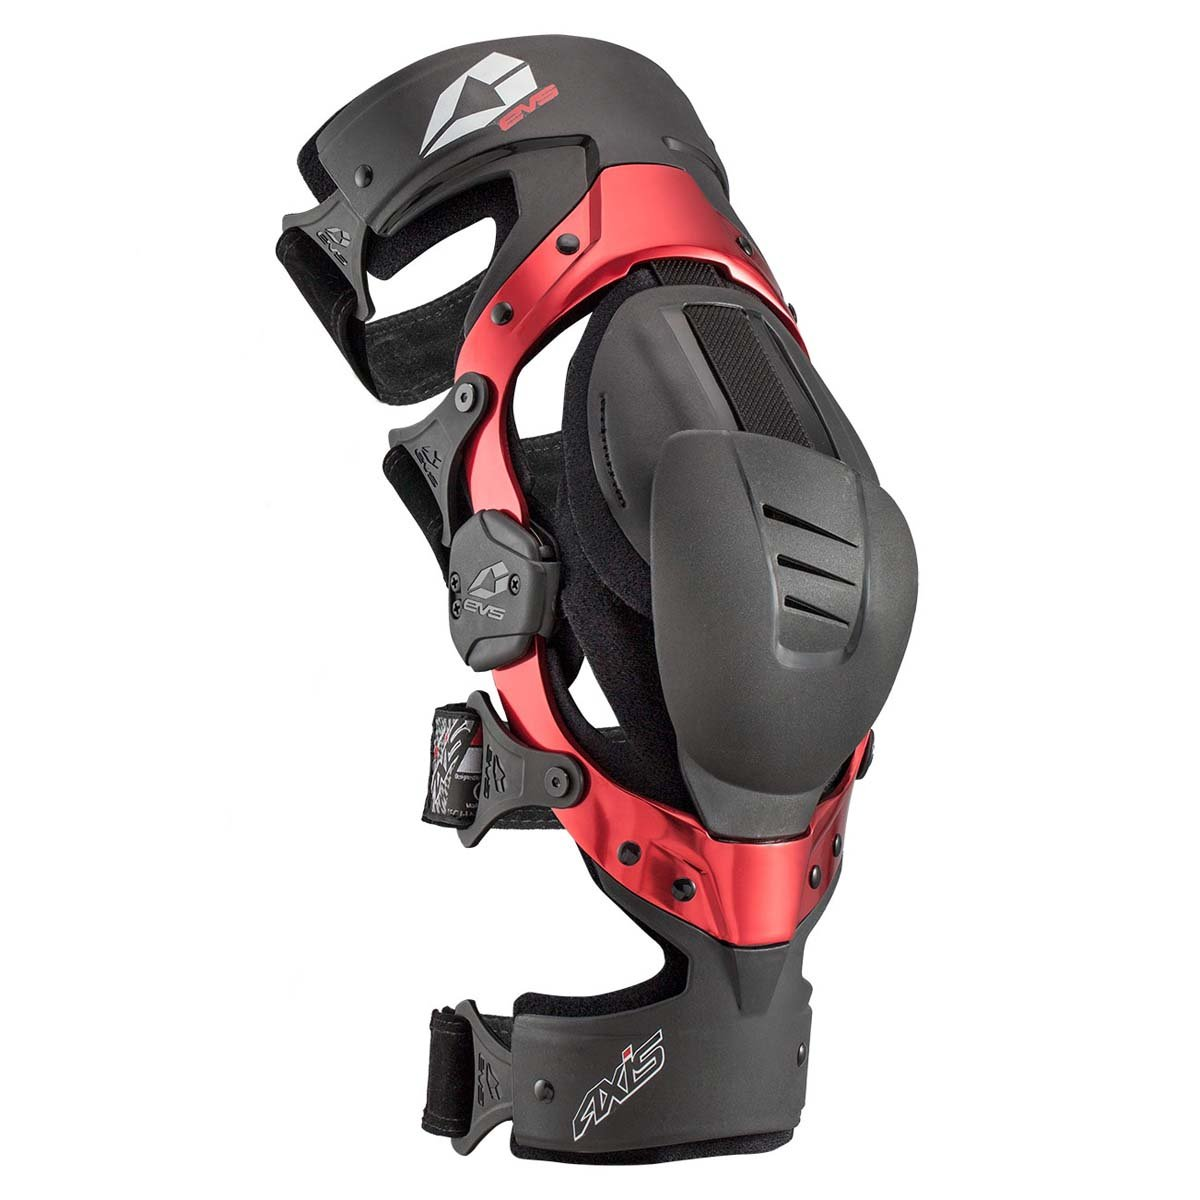 EVS Axis Sport Adult Knee Brace Motocross/Off-Road/Dirt Bike Motorcycle Body Armor - Small - Left